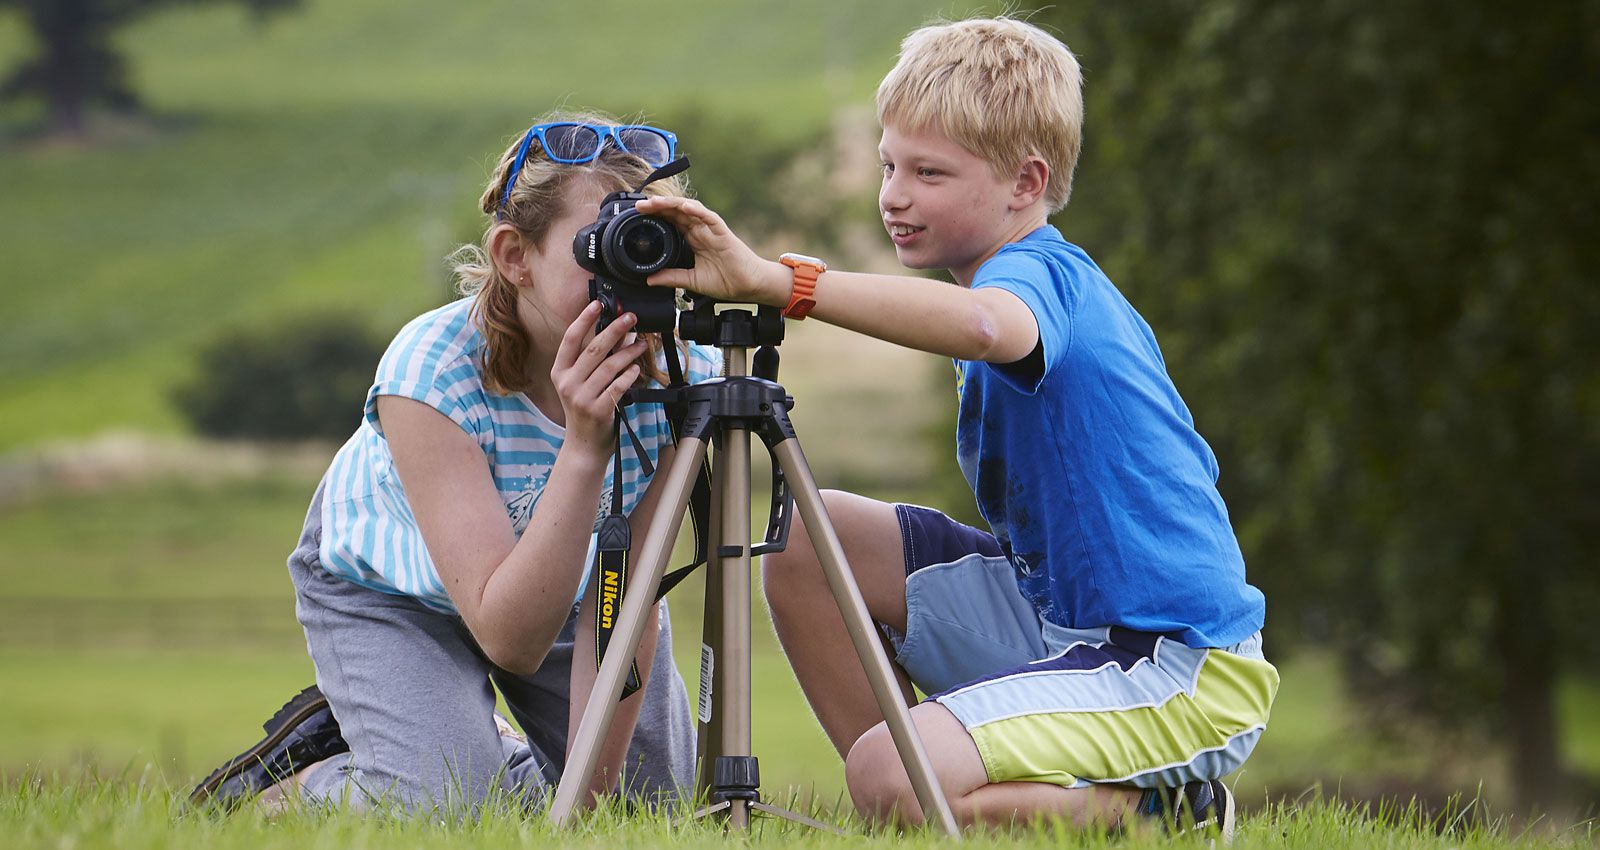 PGL Adventure Holidays - Specialist Holidays and Summer Camps for 7-17 year olds - Creative Kids - Photography Adventure, Music Studio, Film Making, Dance, Video Games Workshop, Stage Skills